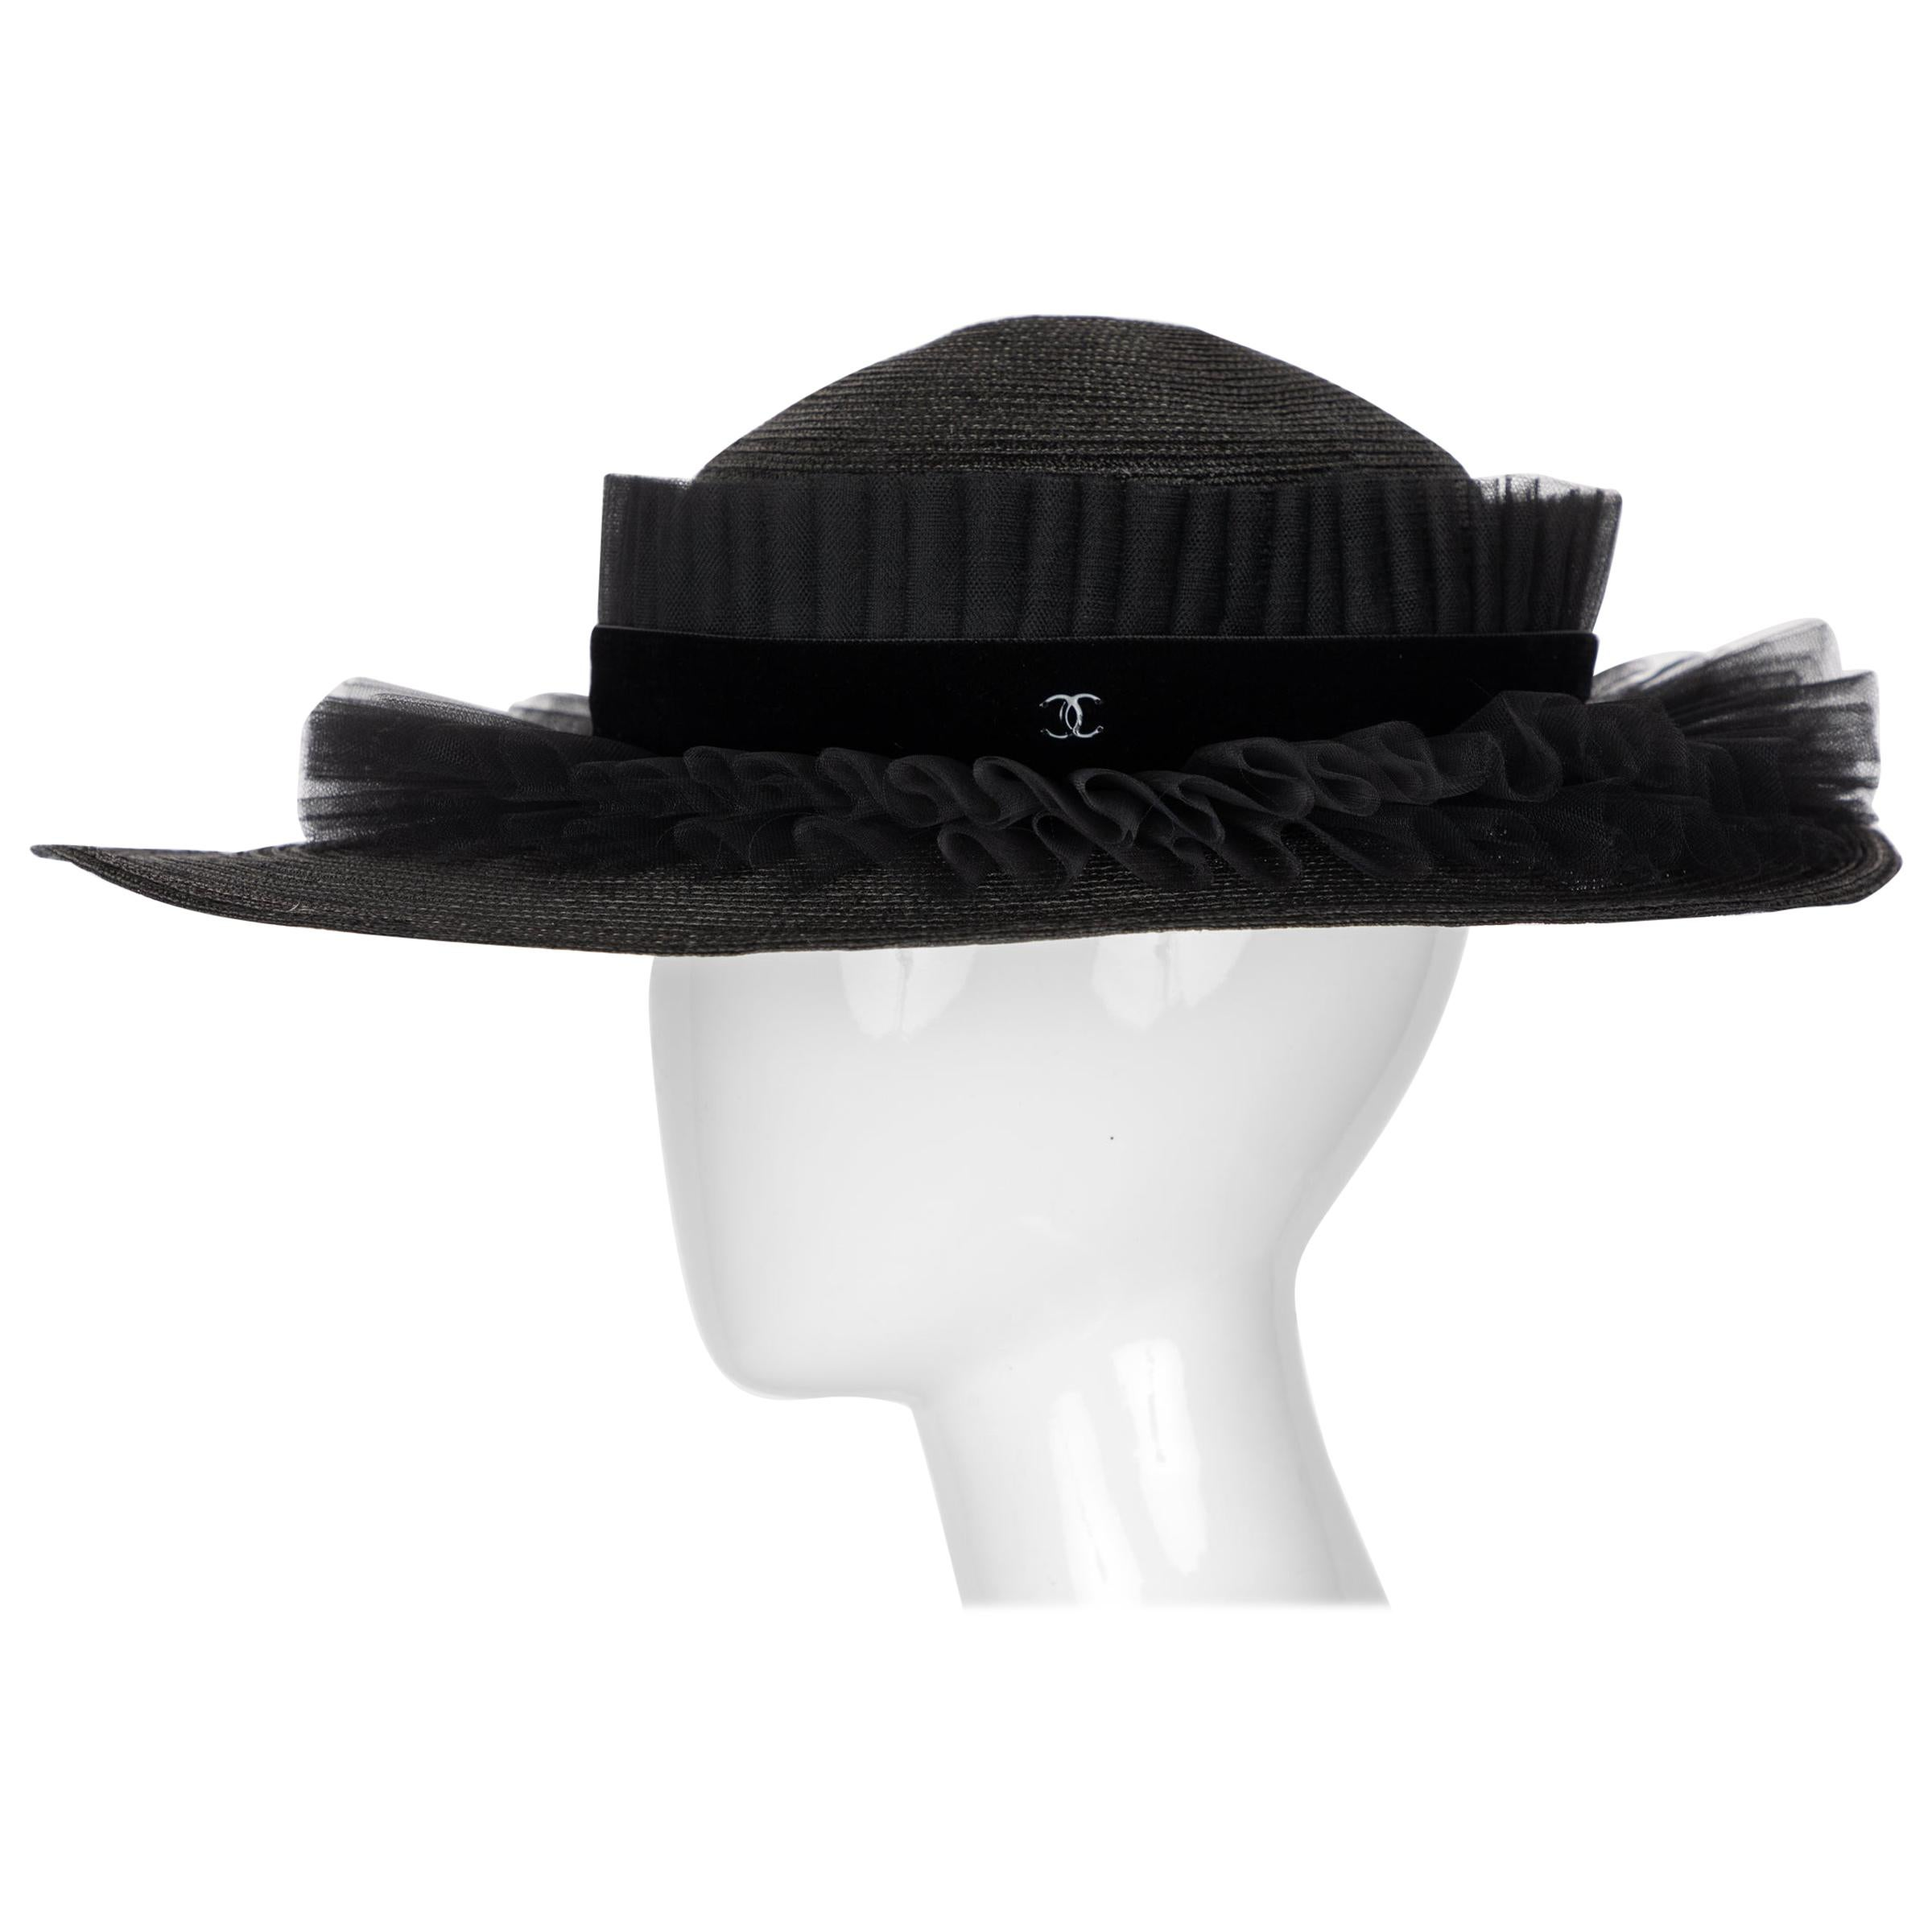 Chanel Black Oval Ruffle Hat Spring 2003